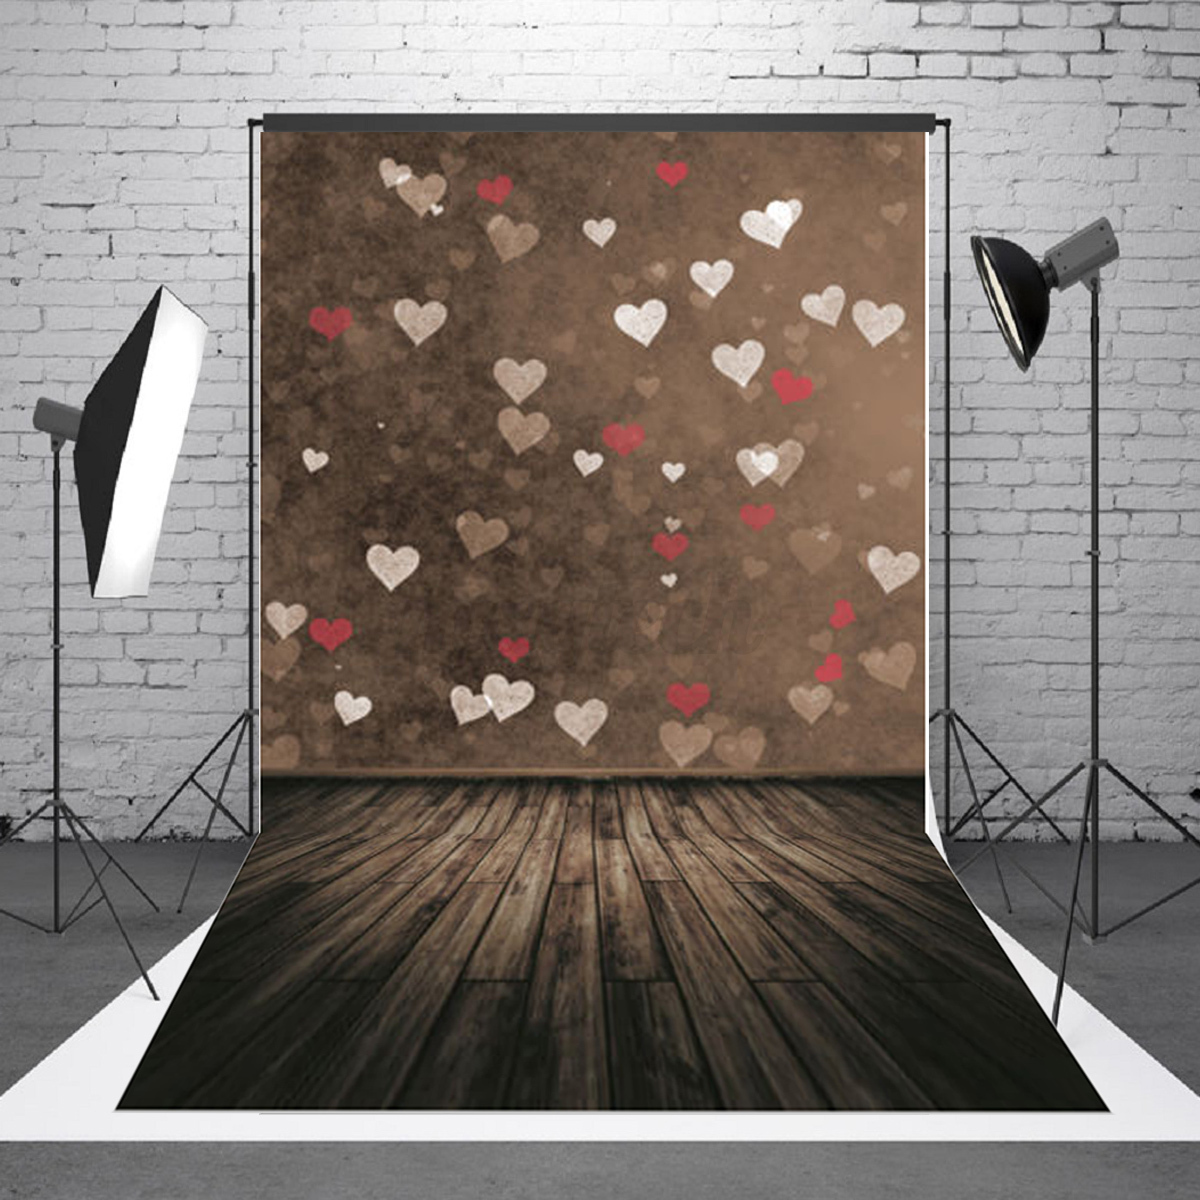 New box truck heartwood manufacturing - 5x7ft Children Kids Love Heart Wood Photography Background